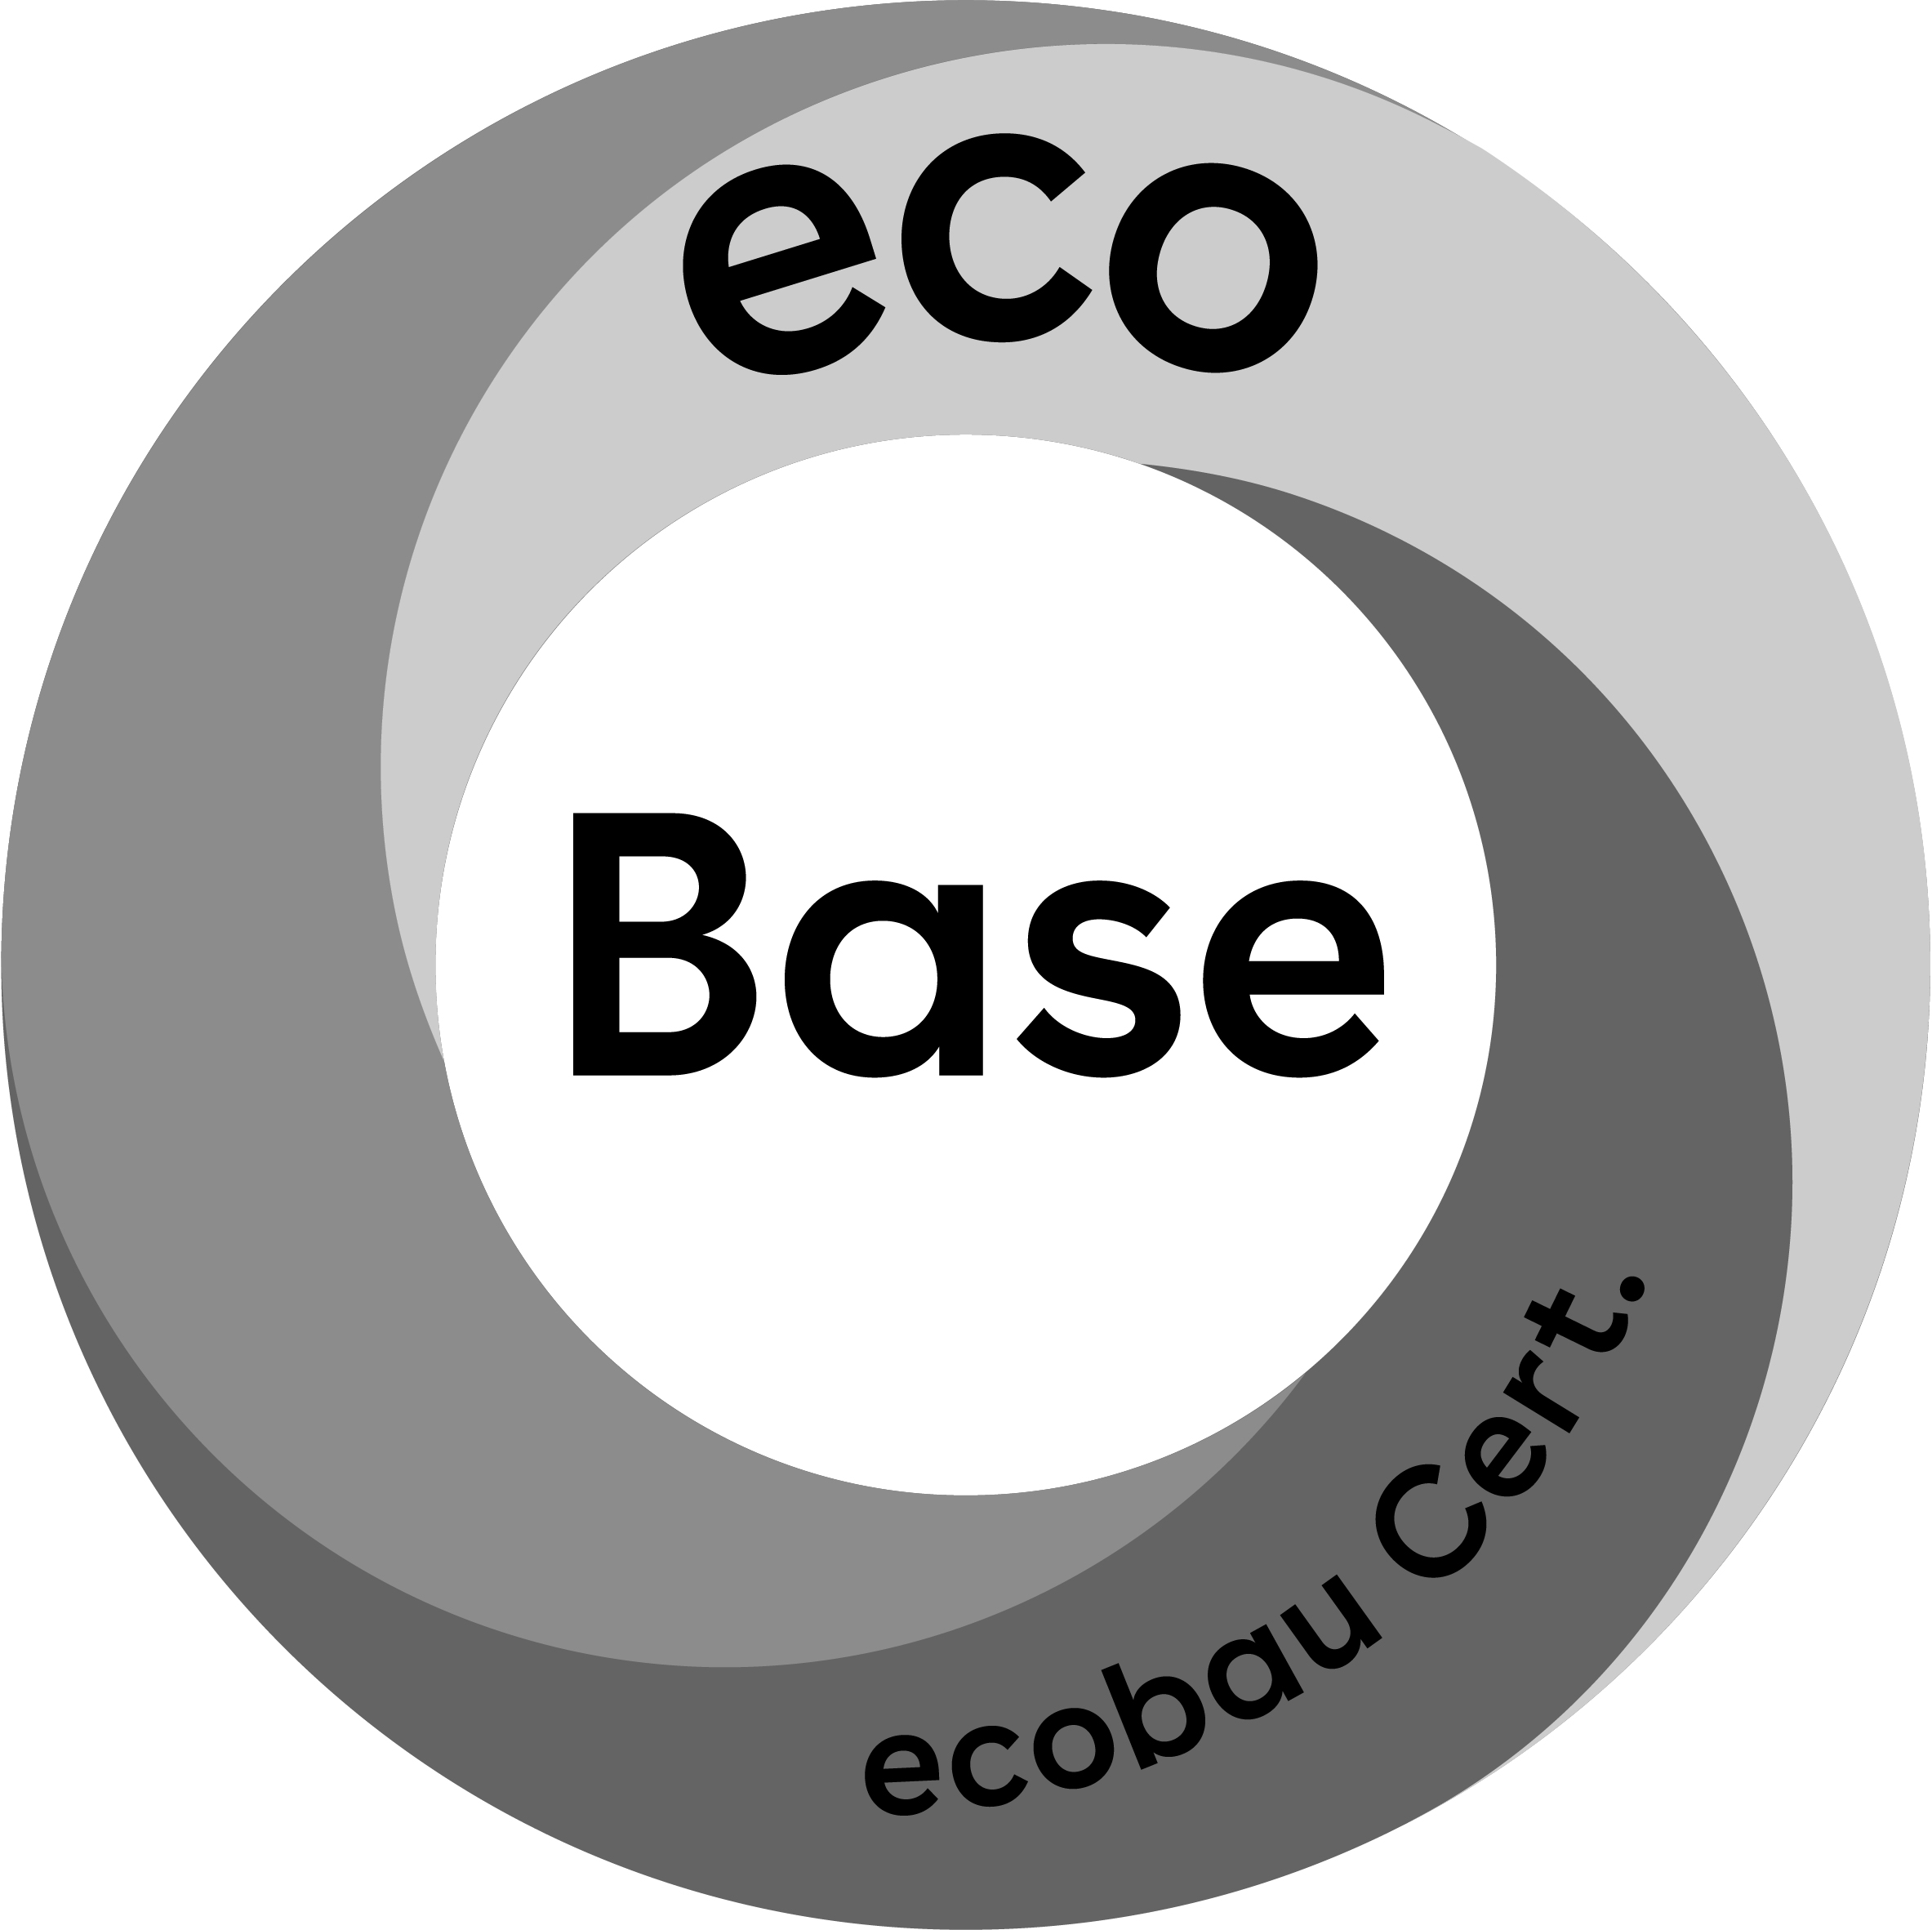 label_eco_bau_basis_bew_fr_72.jpg